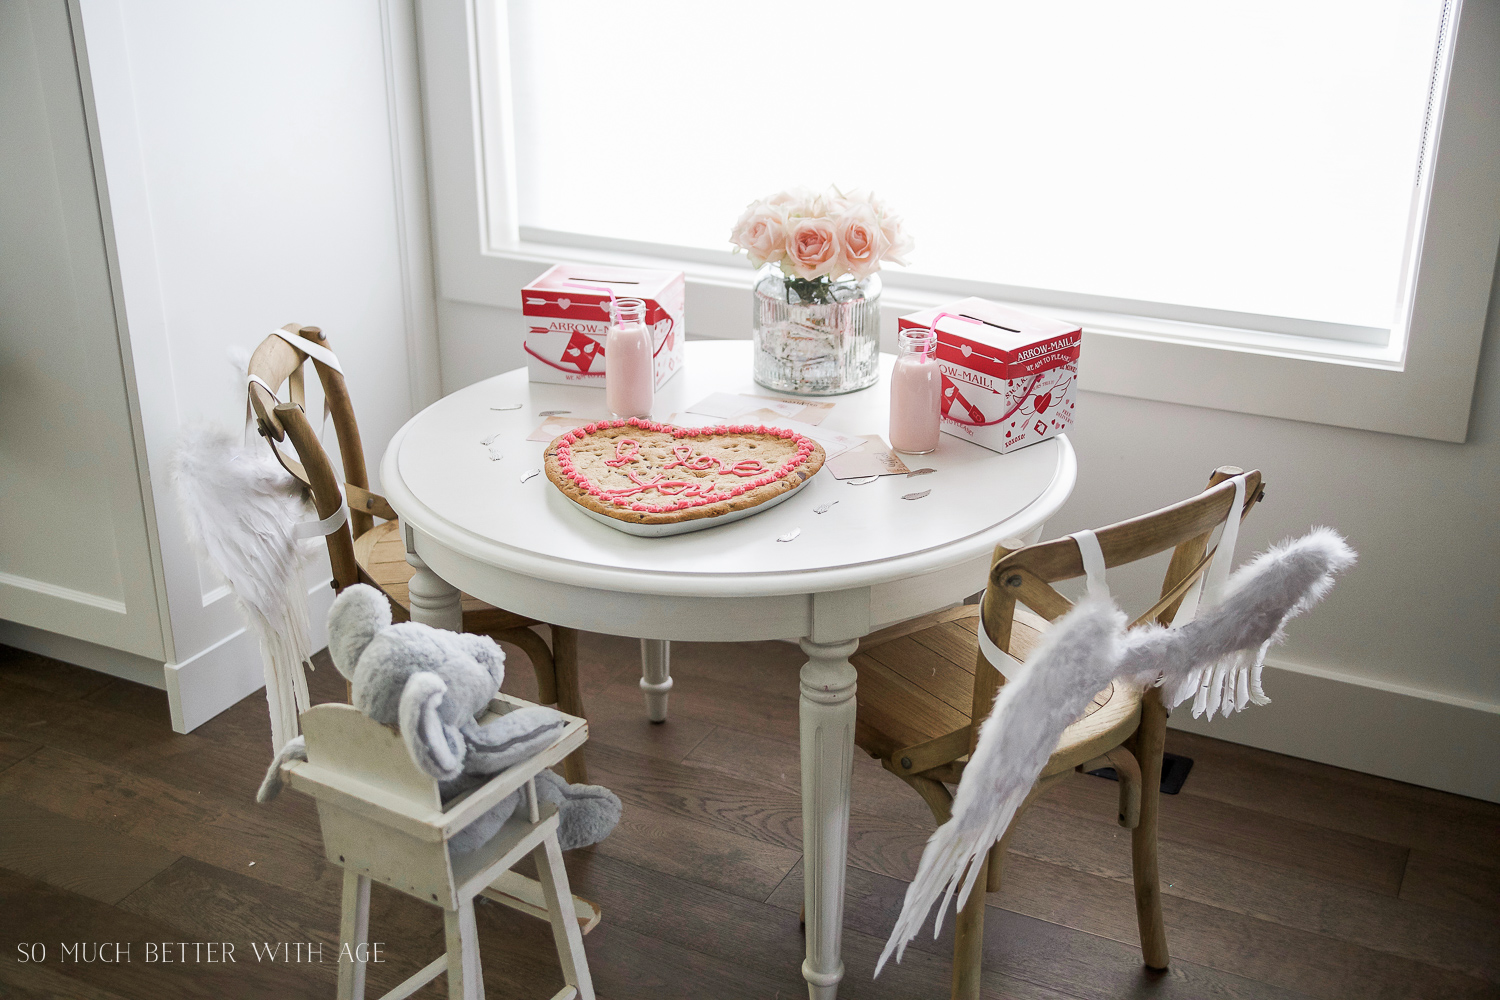 Valentine's Day Kids' Table / angel wings on chair - So Much Better With Age